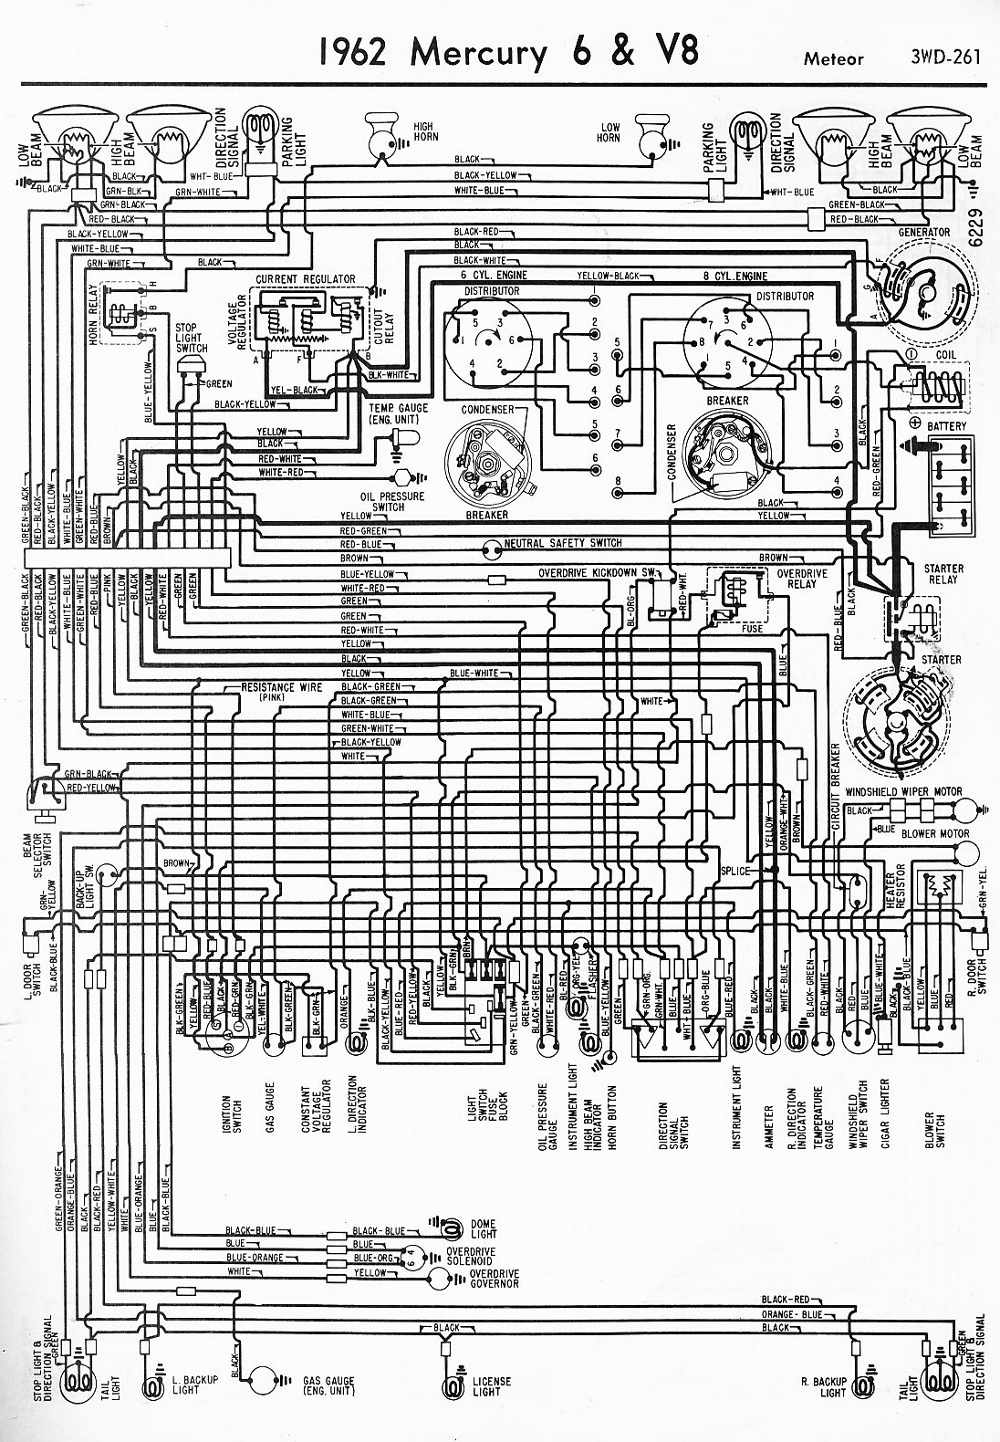 1966 Mercury Park Lane Wiring Diagram Library Comet 1962 6 And V8 Meteor